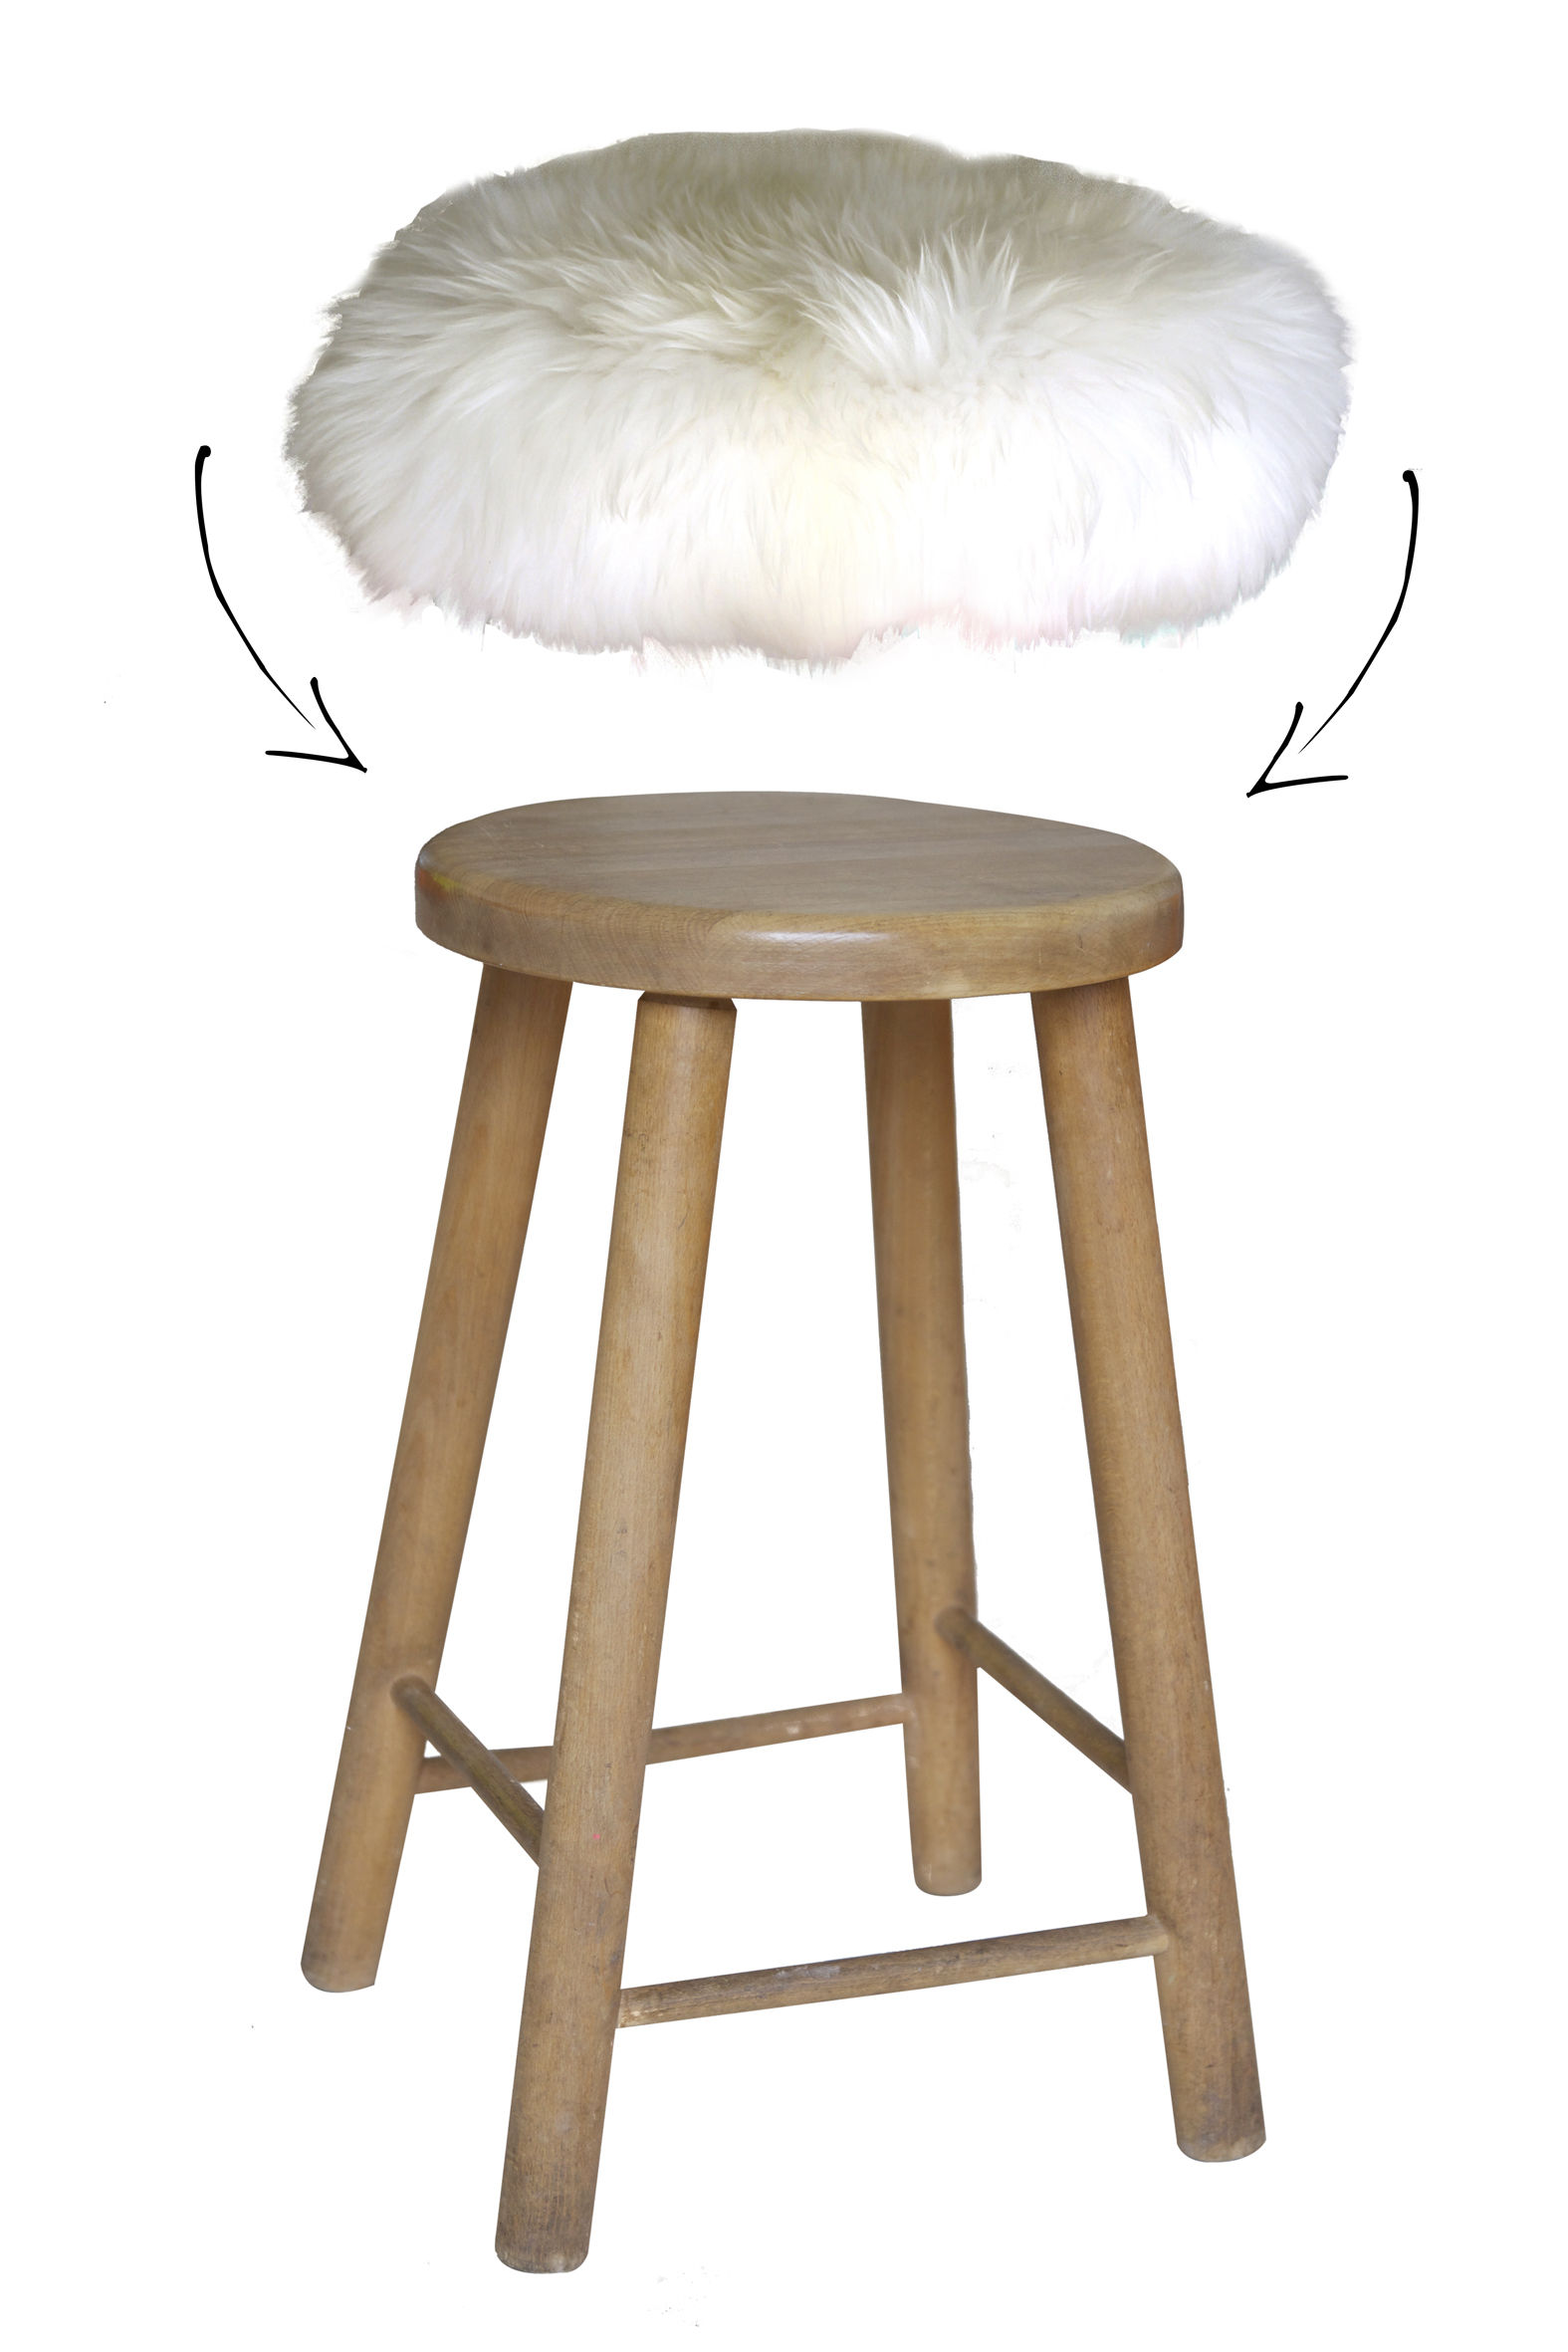 Housse de tabouret top moumoute peau de mouton v ritable for Housse de tabouret de bar